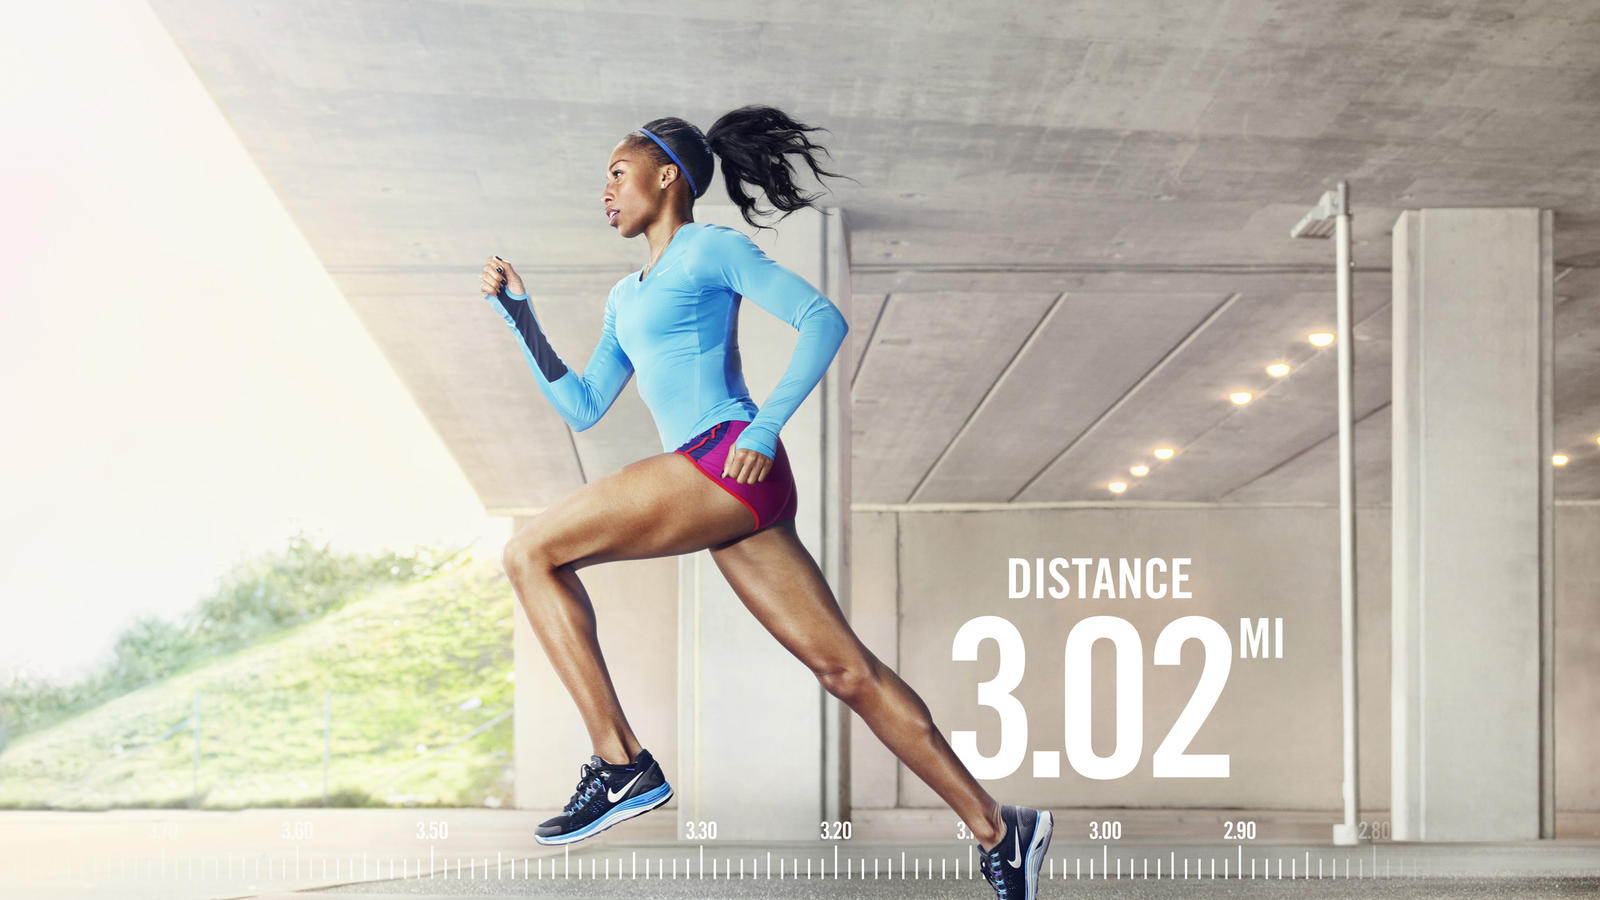 The New Nike Running Experience: Smarter, More Social, More Motivational - Nike News